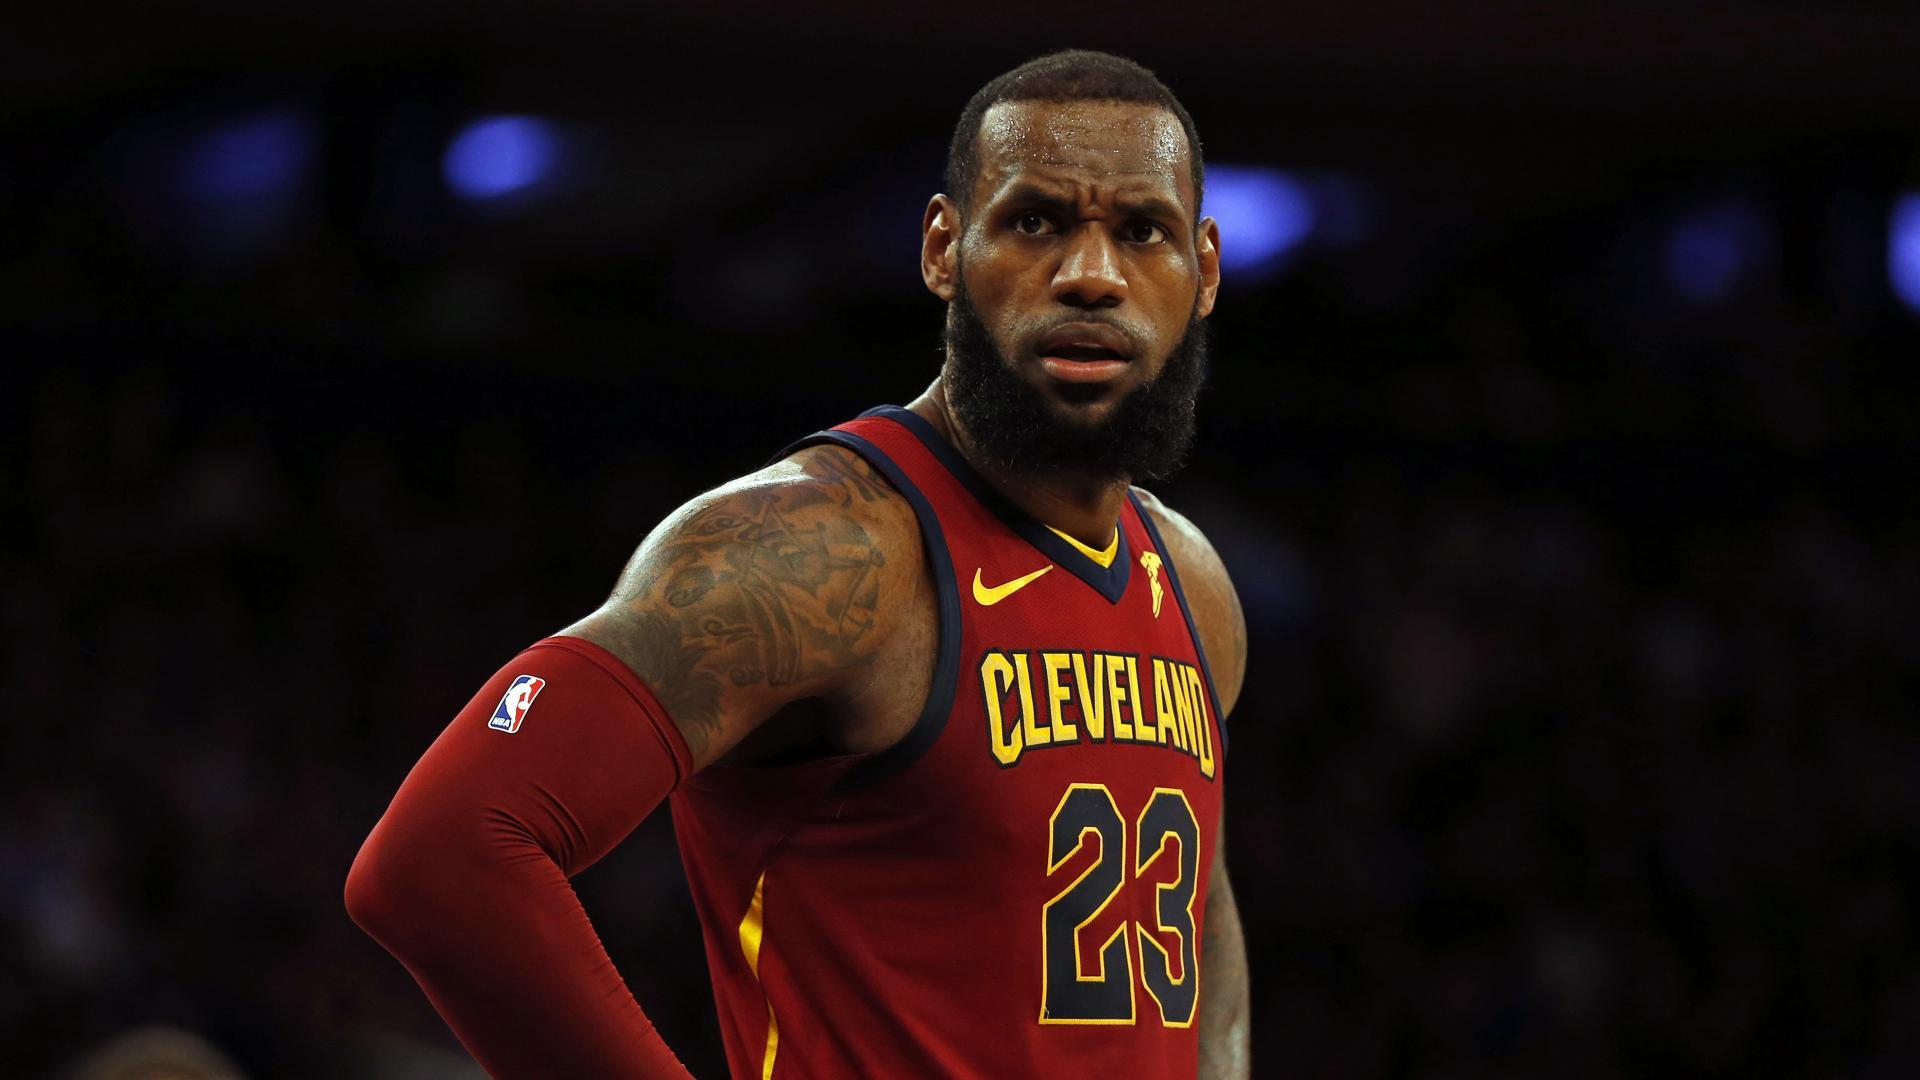 LeBron James, seal, $154 million, deal, Los Angeles Lakers, Sports, Basketball, NBA, Newsmobile, Mobile News, India